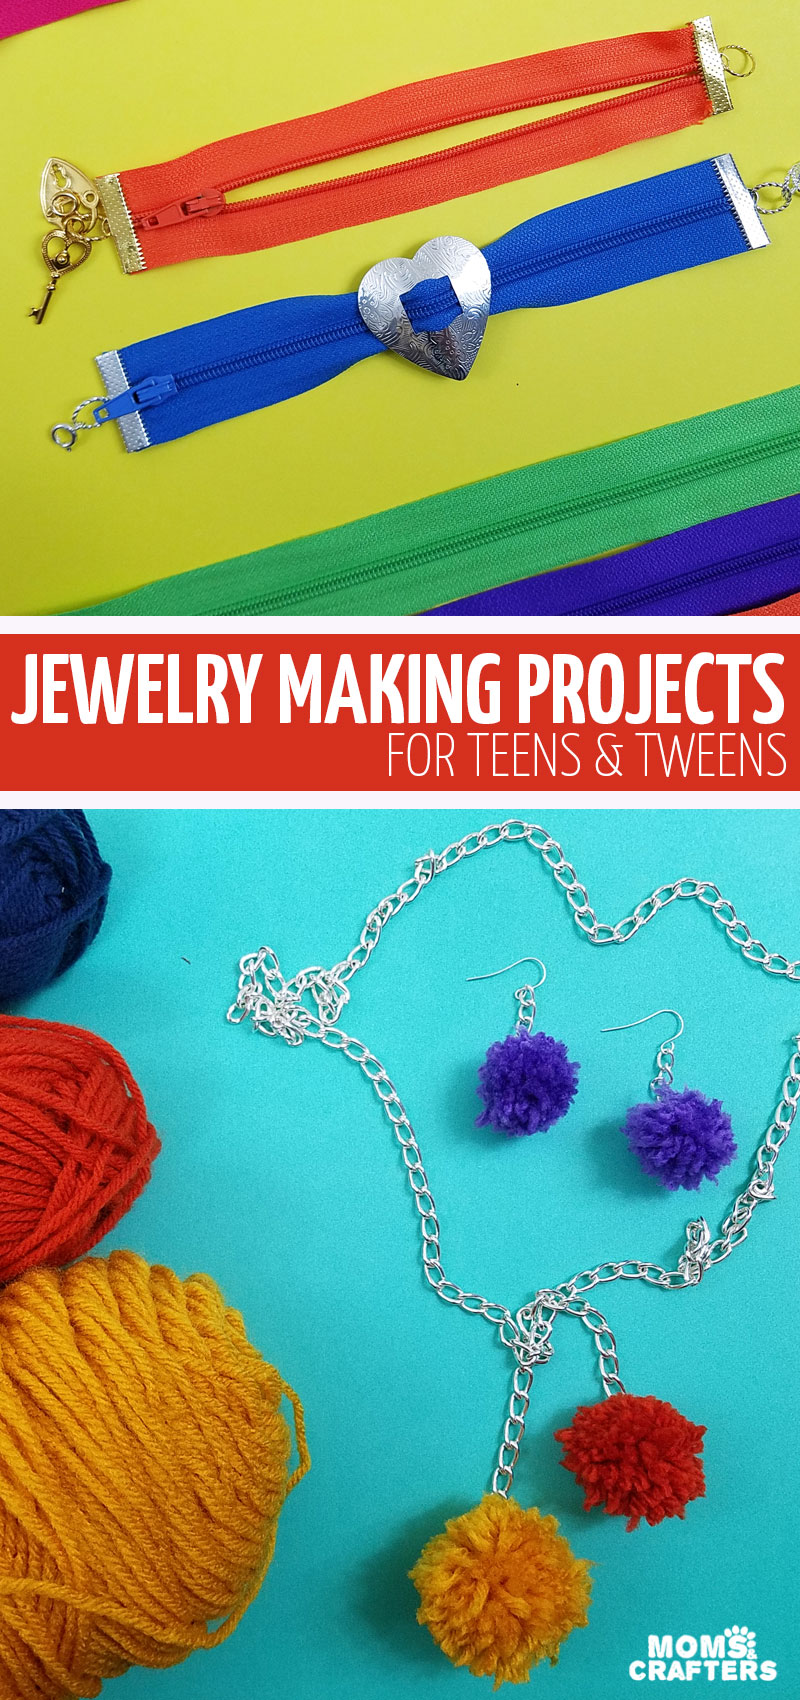 Click for over 36 jewelry making for teens ideas and projects! These cool tutorials come in one convenient ebook and makes great summer activities for teens, tweens, and big kids!